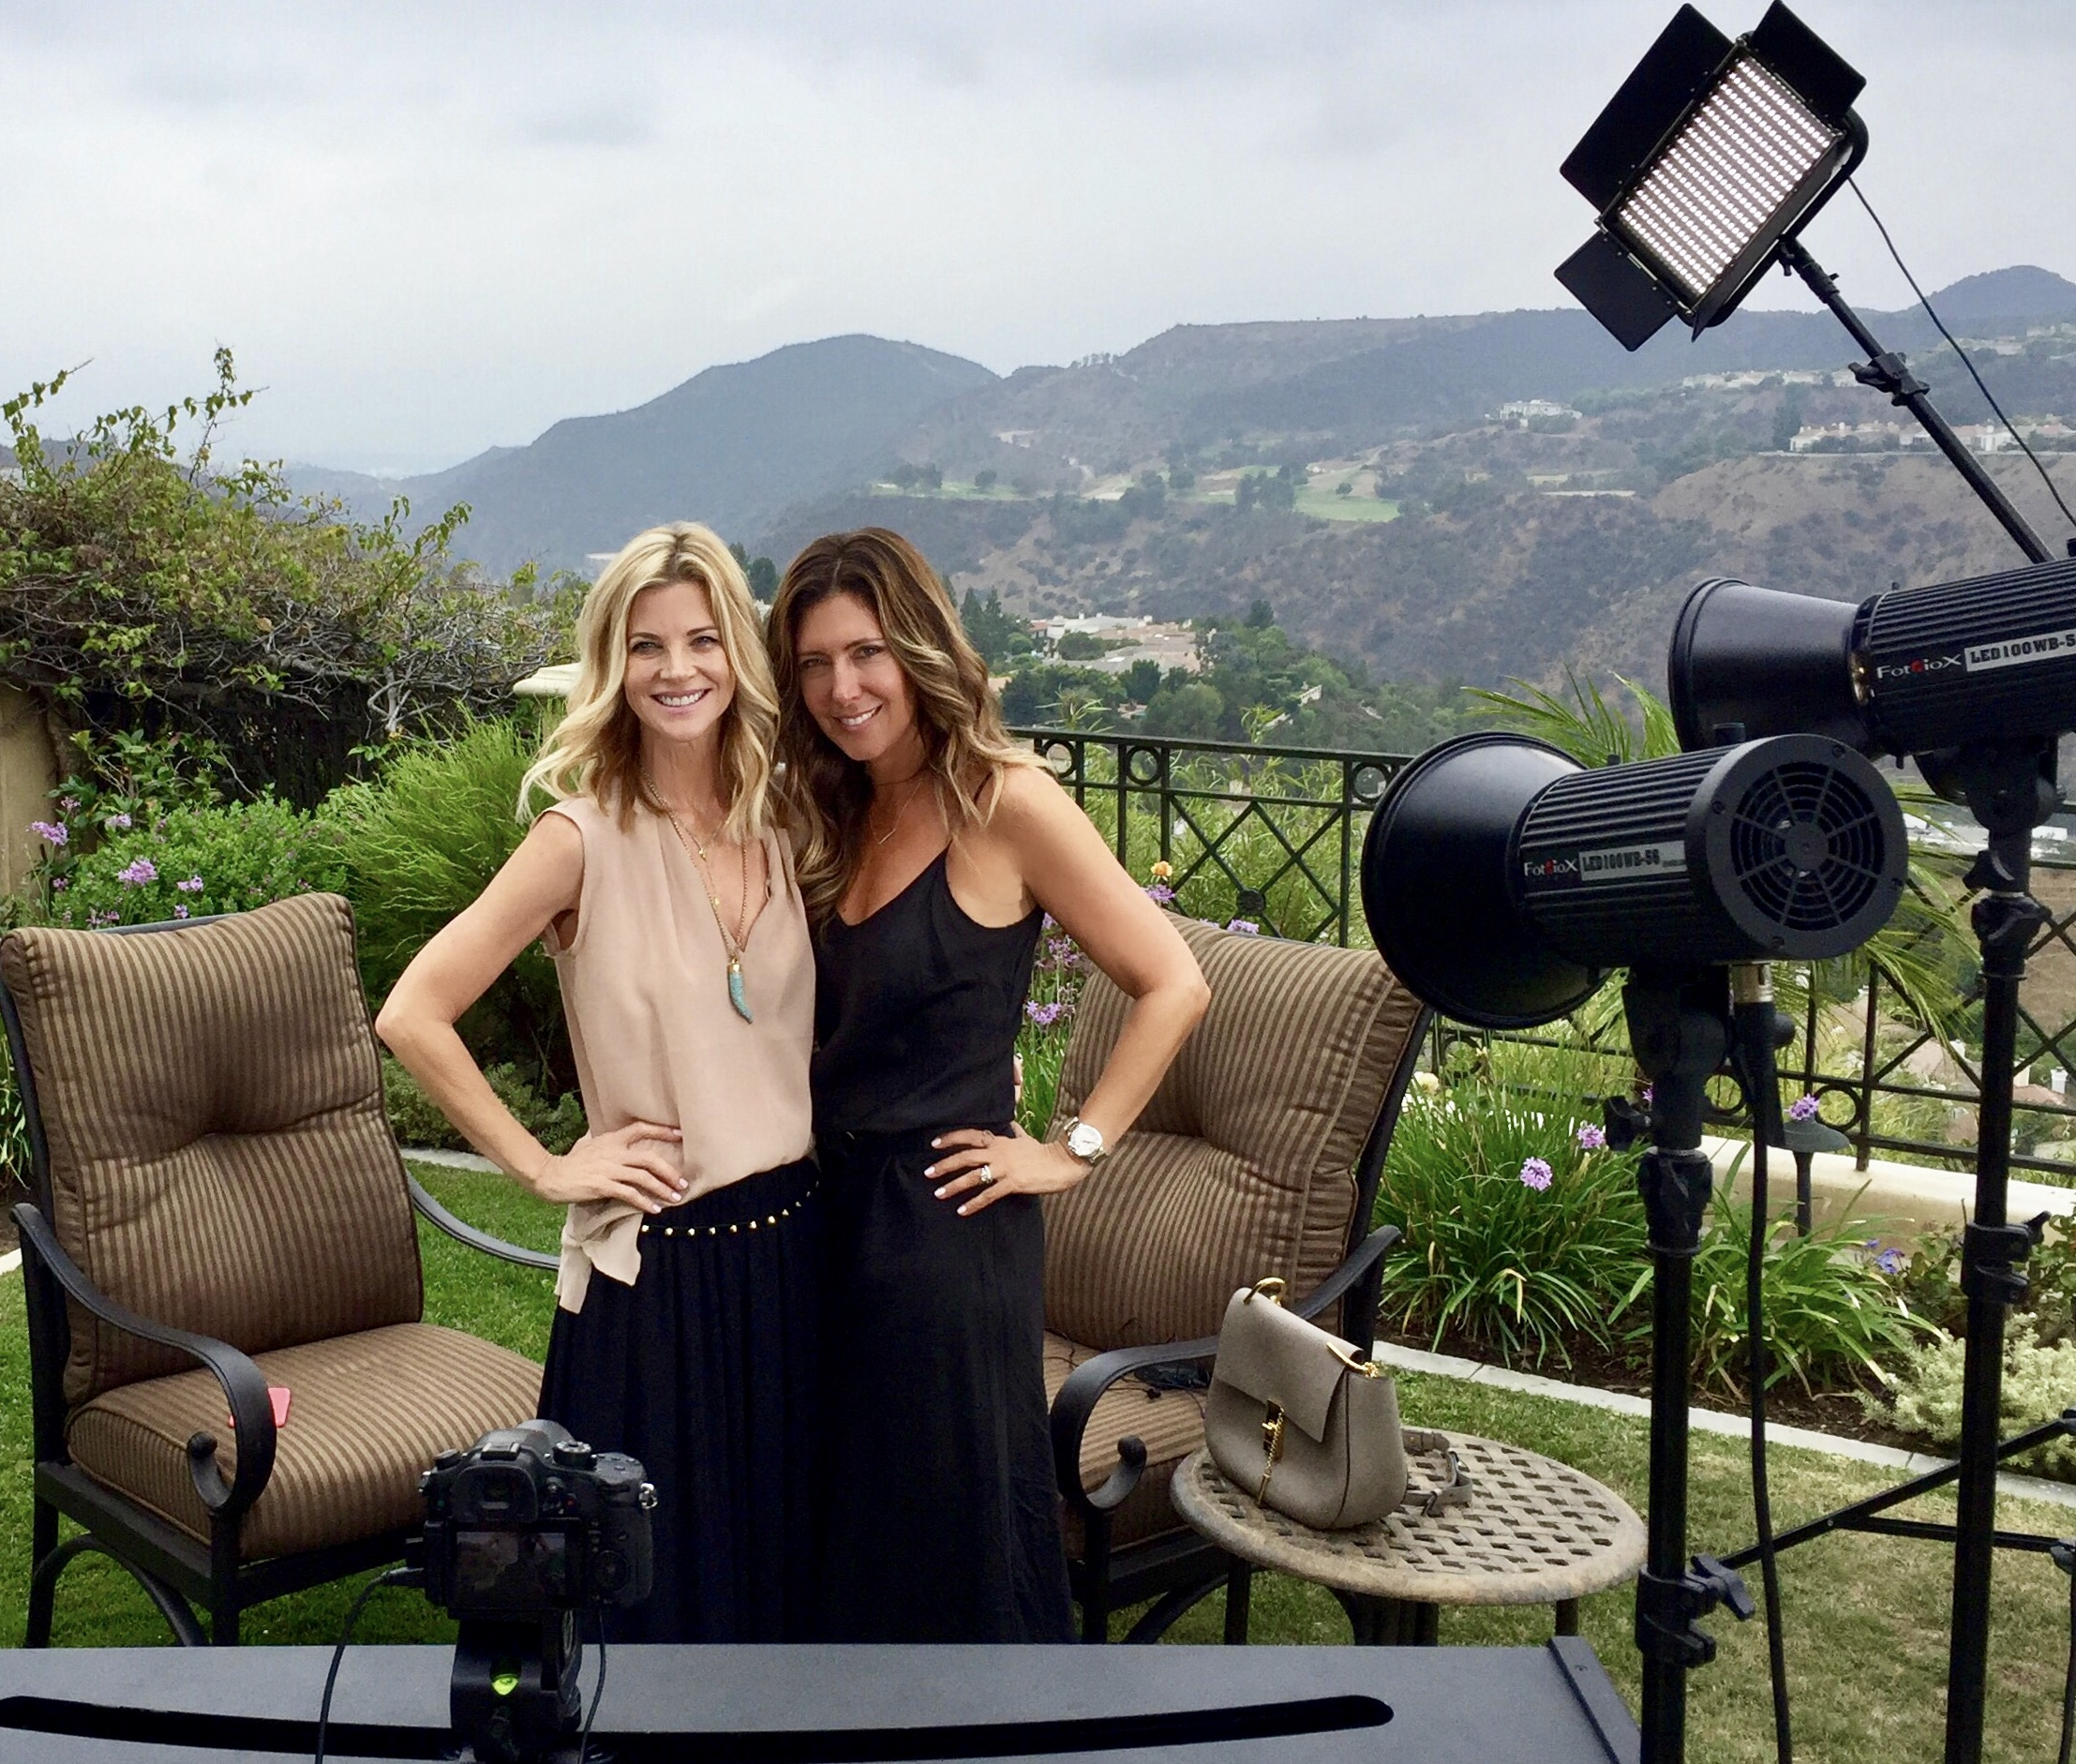 On set in Bel Air, Los Angeles with  Janet Gunn of The Grateful Gardenia